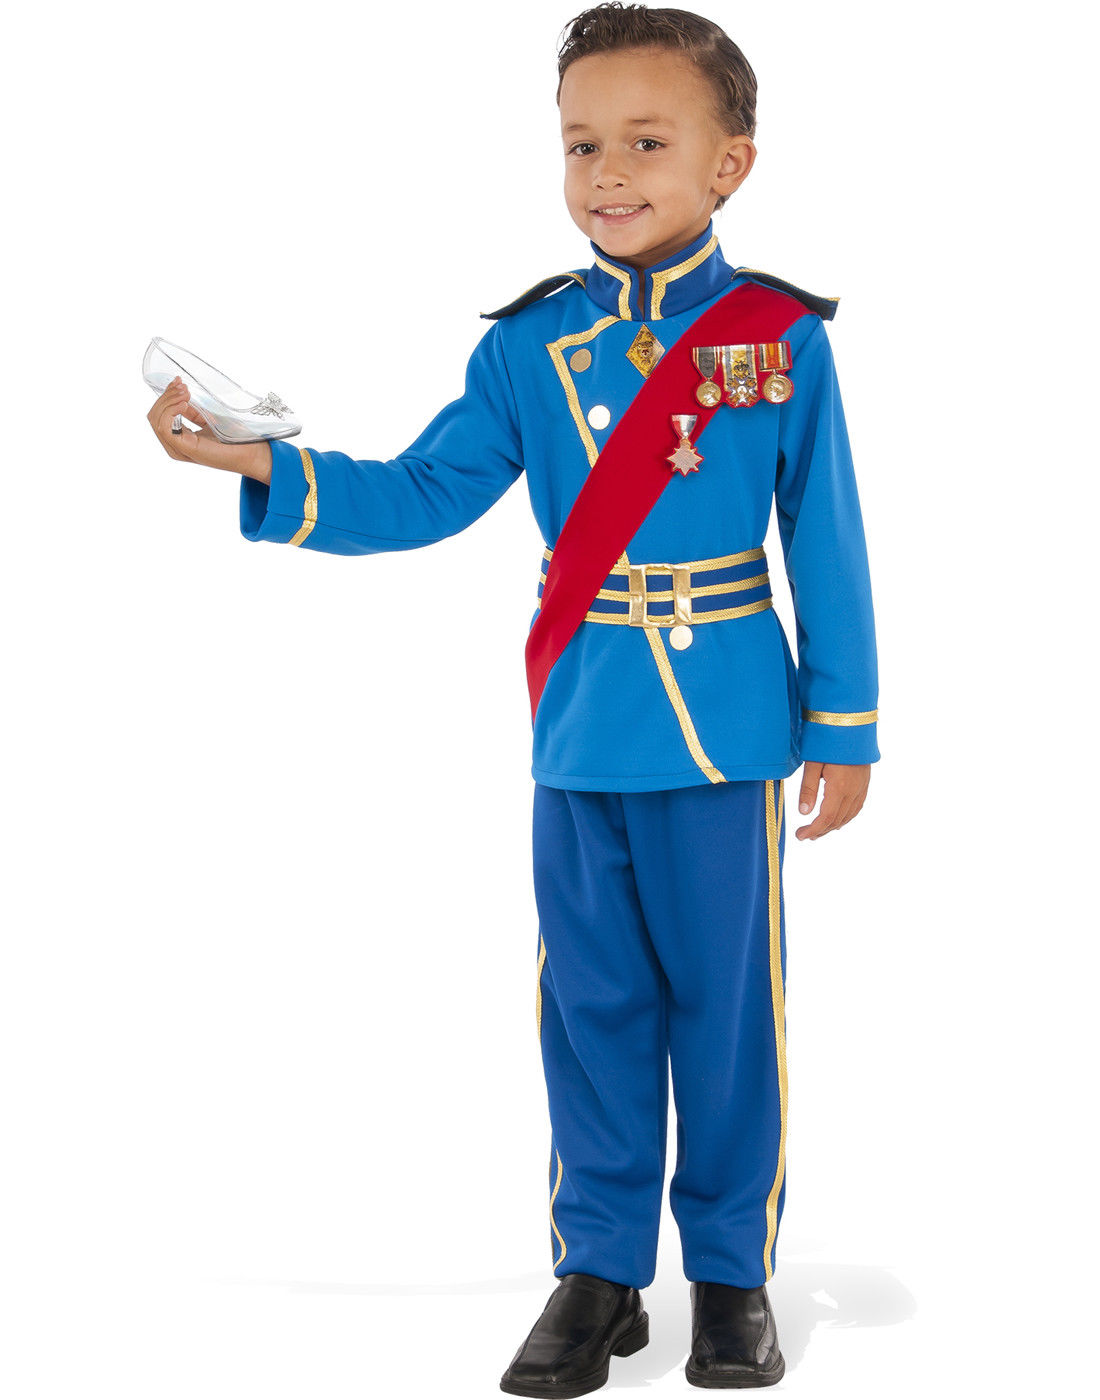 Child Boys Fairy Tail Royal Prince Royalty Prince Charming Halloween Costume  sc 1 st  eBay & Child Boys Fairy Tail Royal Prince Royalty Prince Charming Halloween ...